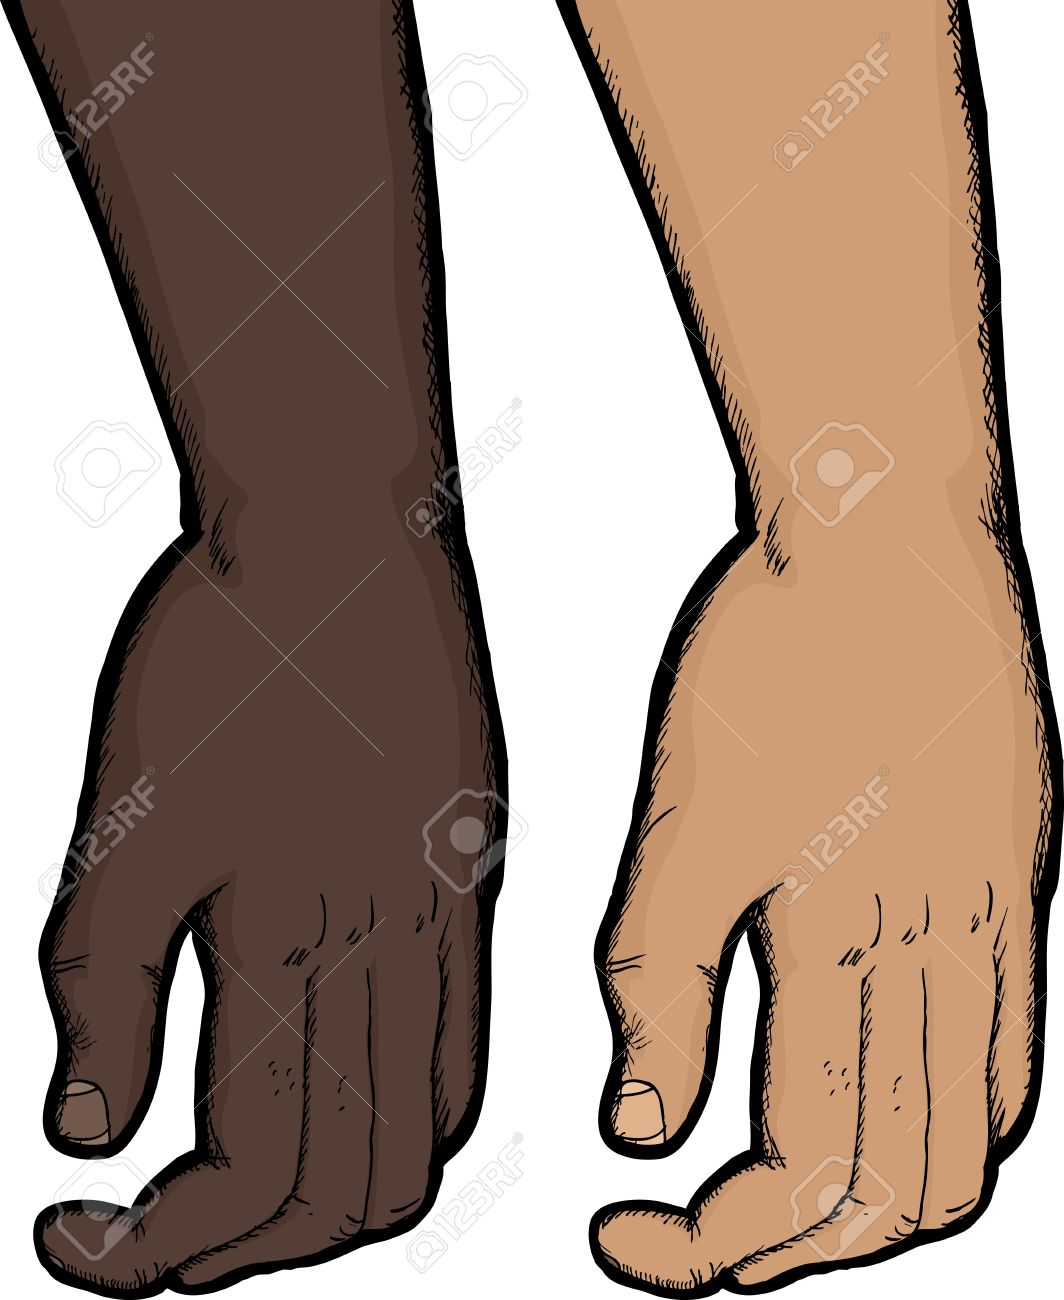 Close Up Of Relaxed Human Hand In Dark And Light Skin Tones.